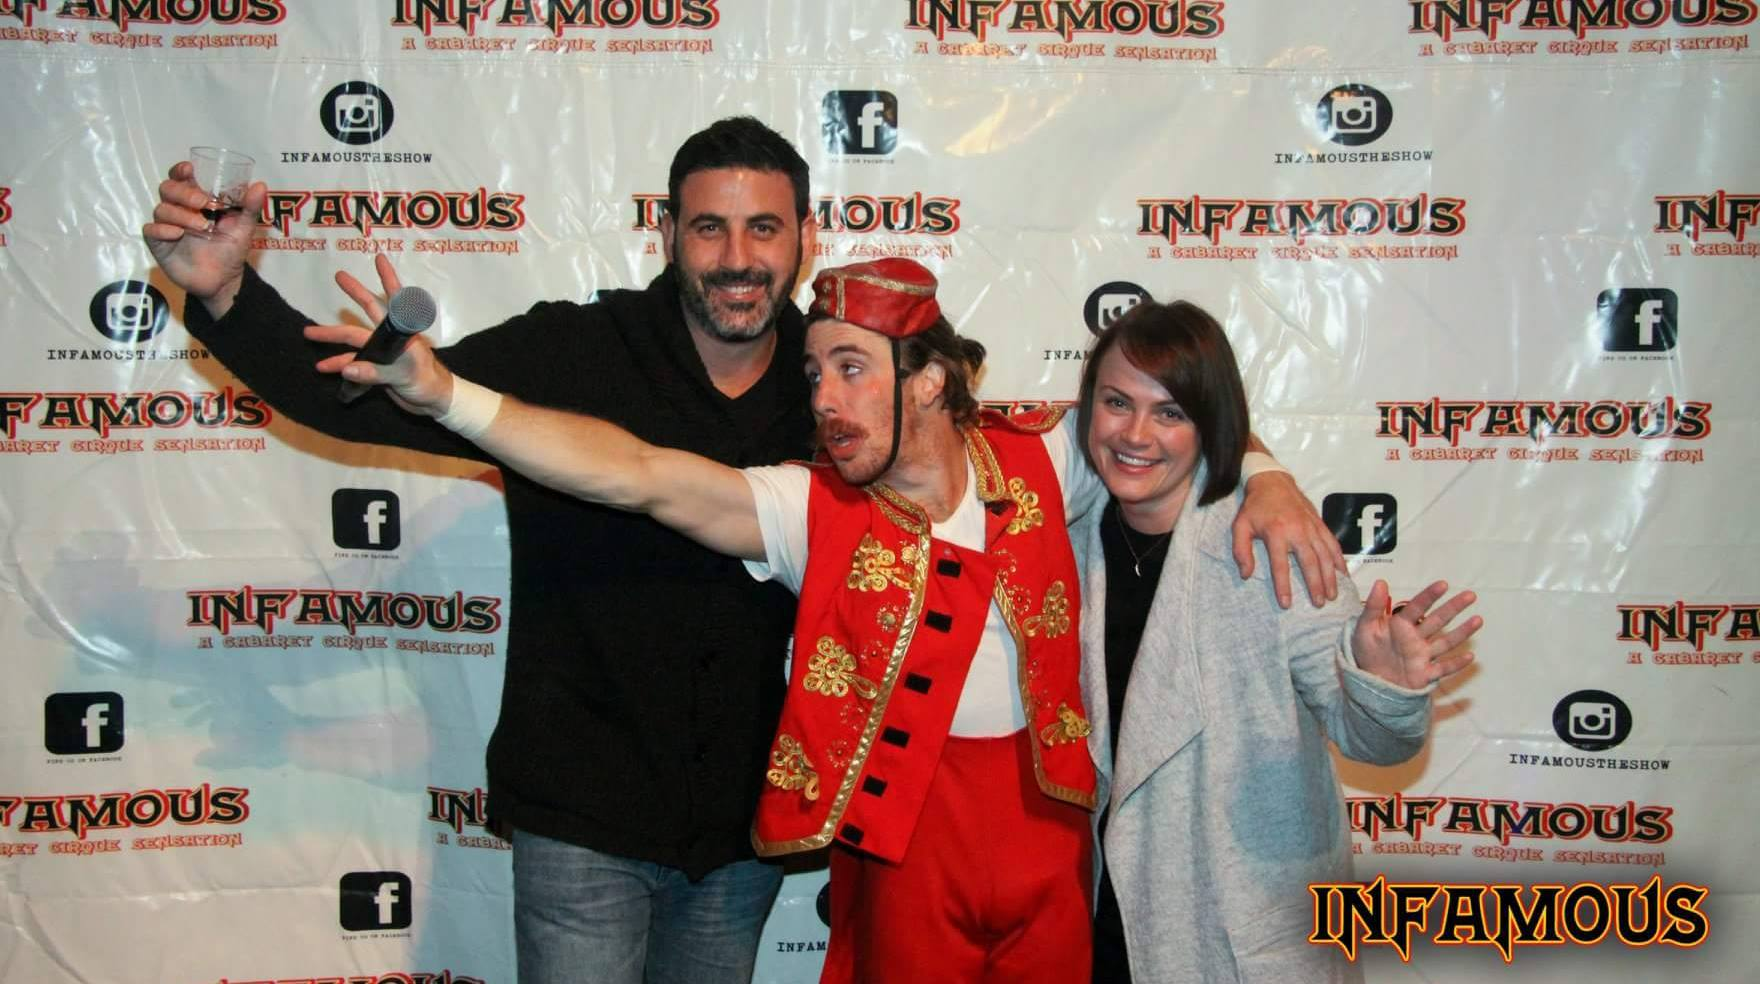 Michael Doig & Louise Connolly at Infamous Cabaret Circus